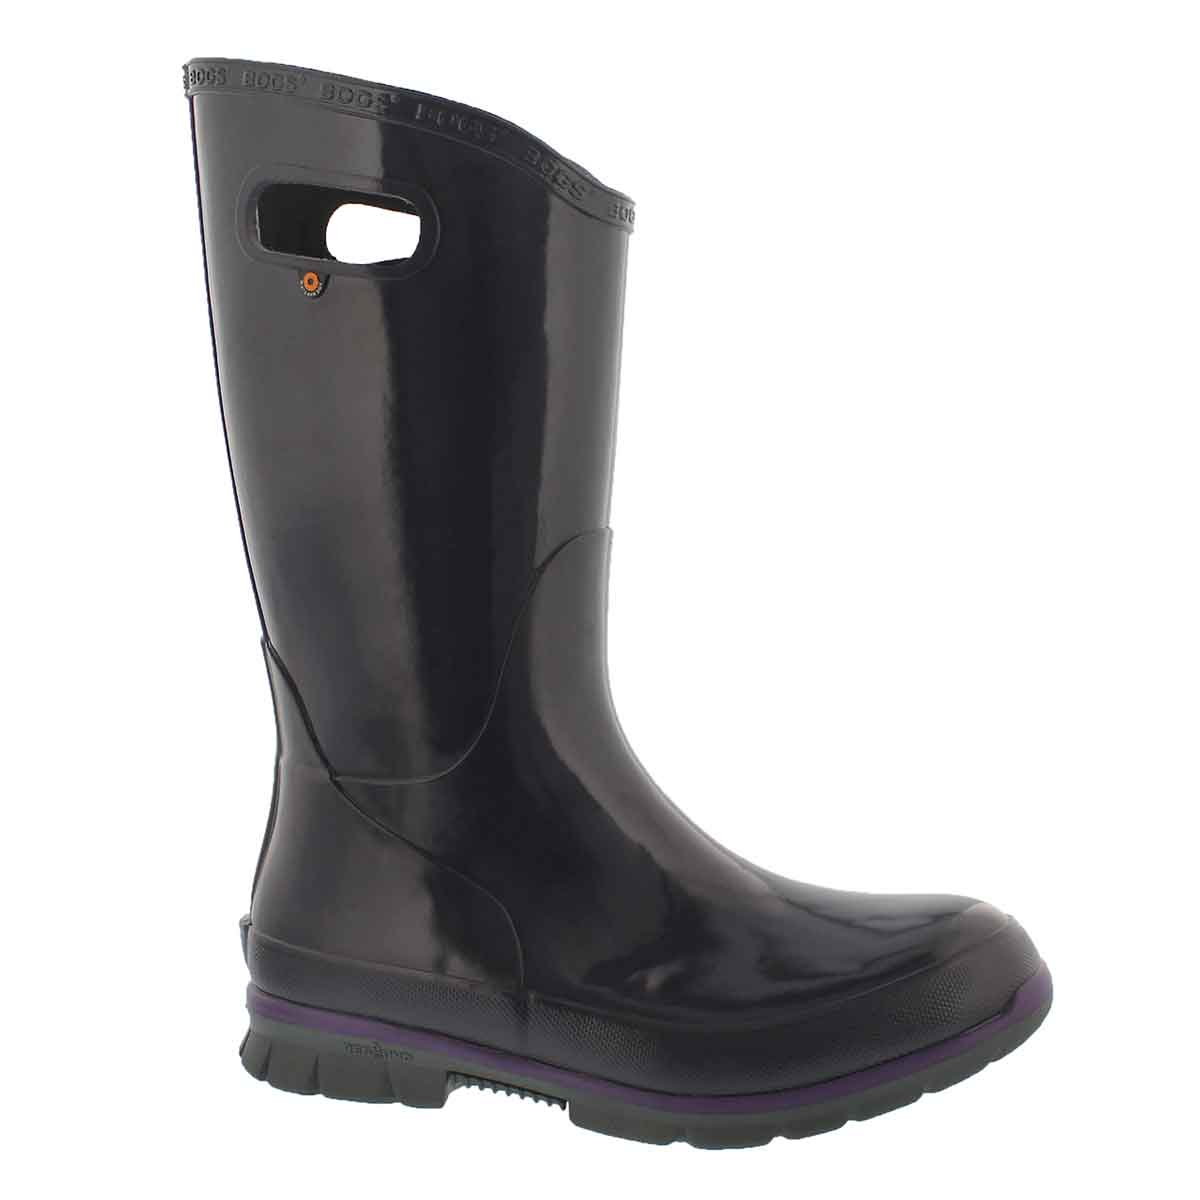 Women's BERKLEY eggplant waterproof rain boots